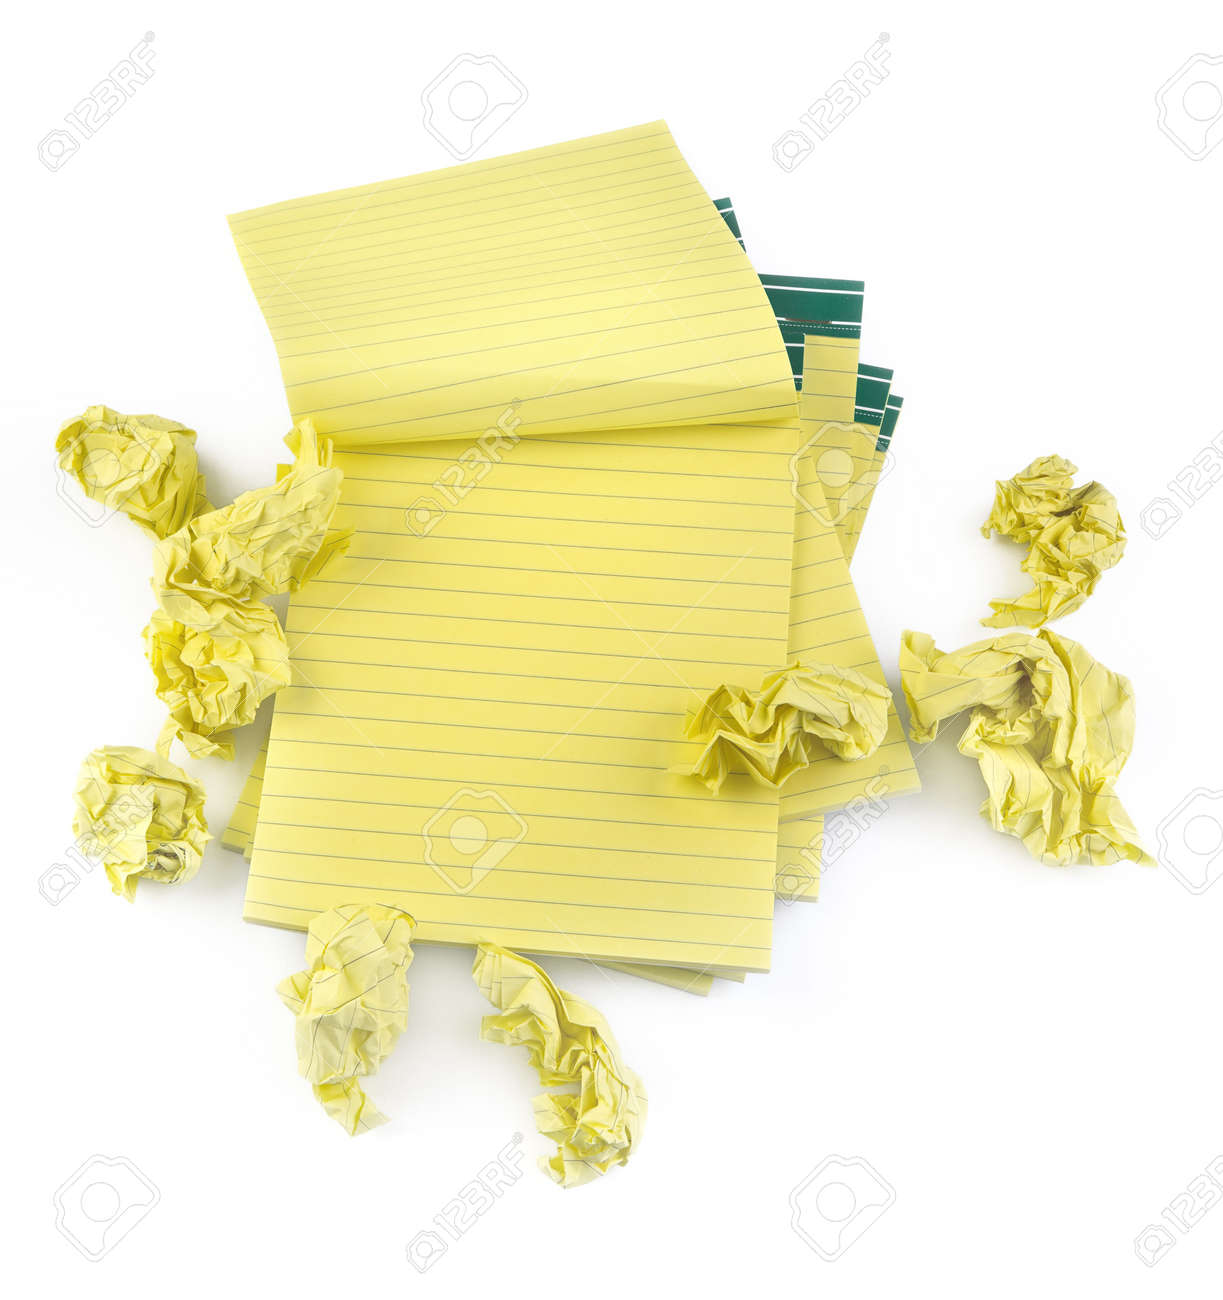 lined paper notebooks and crumpled paper on white background Stock Photo - 5848928